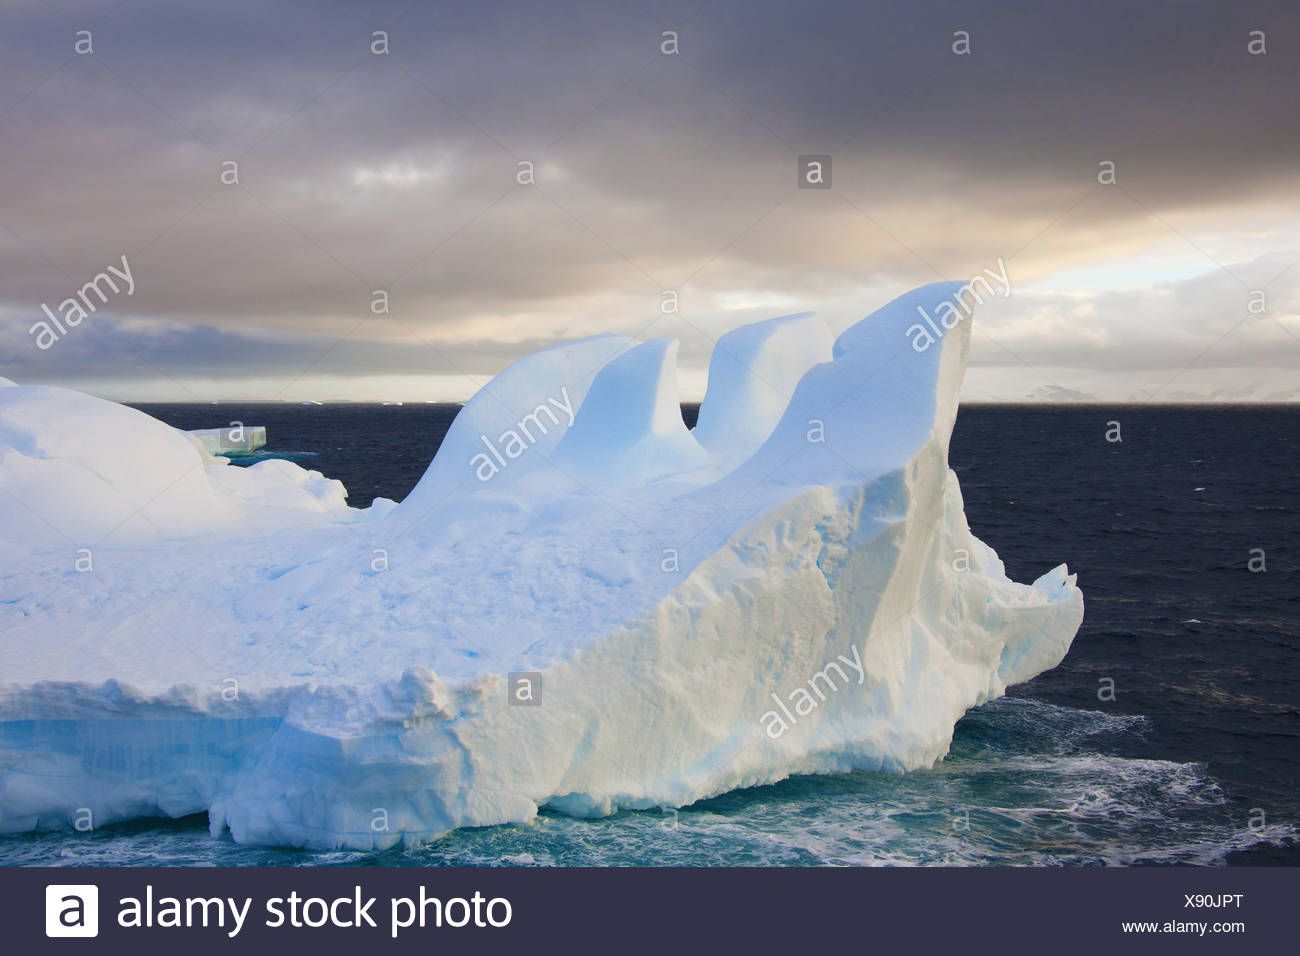 Icebergs floating on the Antarctic southern oceans Eroded by wind and weather creating interesting shapes - Stock Image